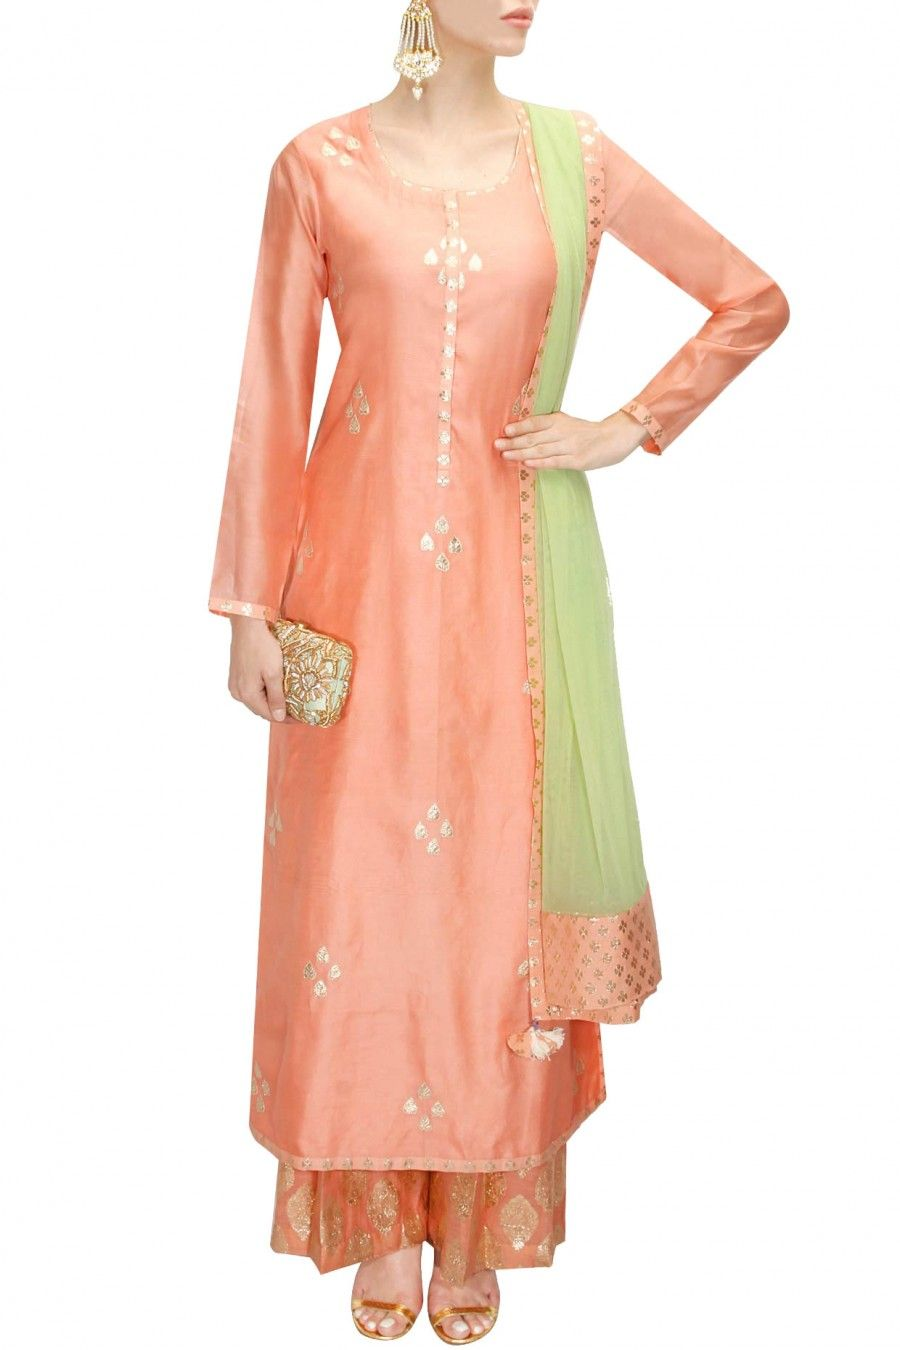 78a9b4a300c5d Featuring a peach chanderi kurta with scattered gota patti bootis. It comes  along with the peach chanderi palazzos pants with brocade motifs all over  and ...